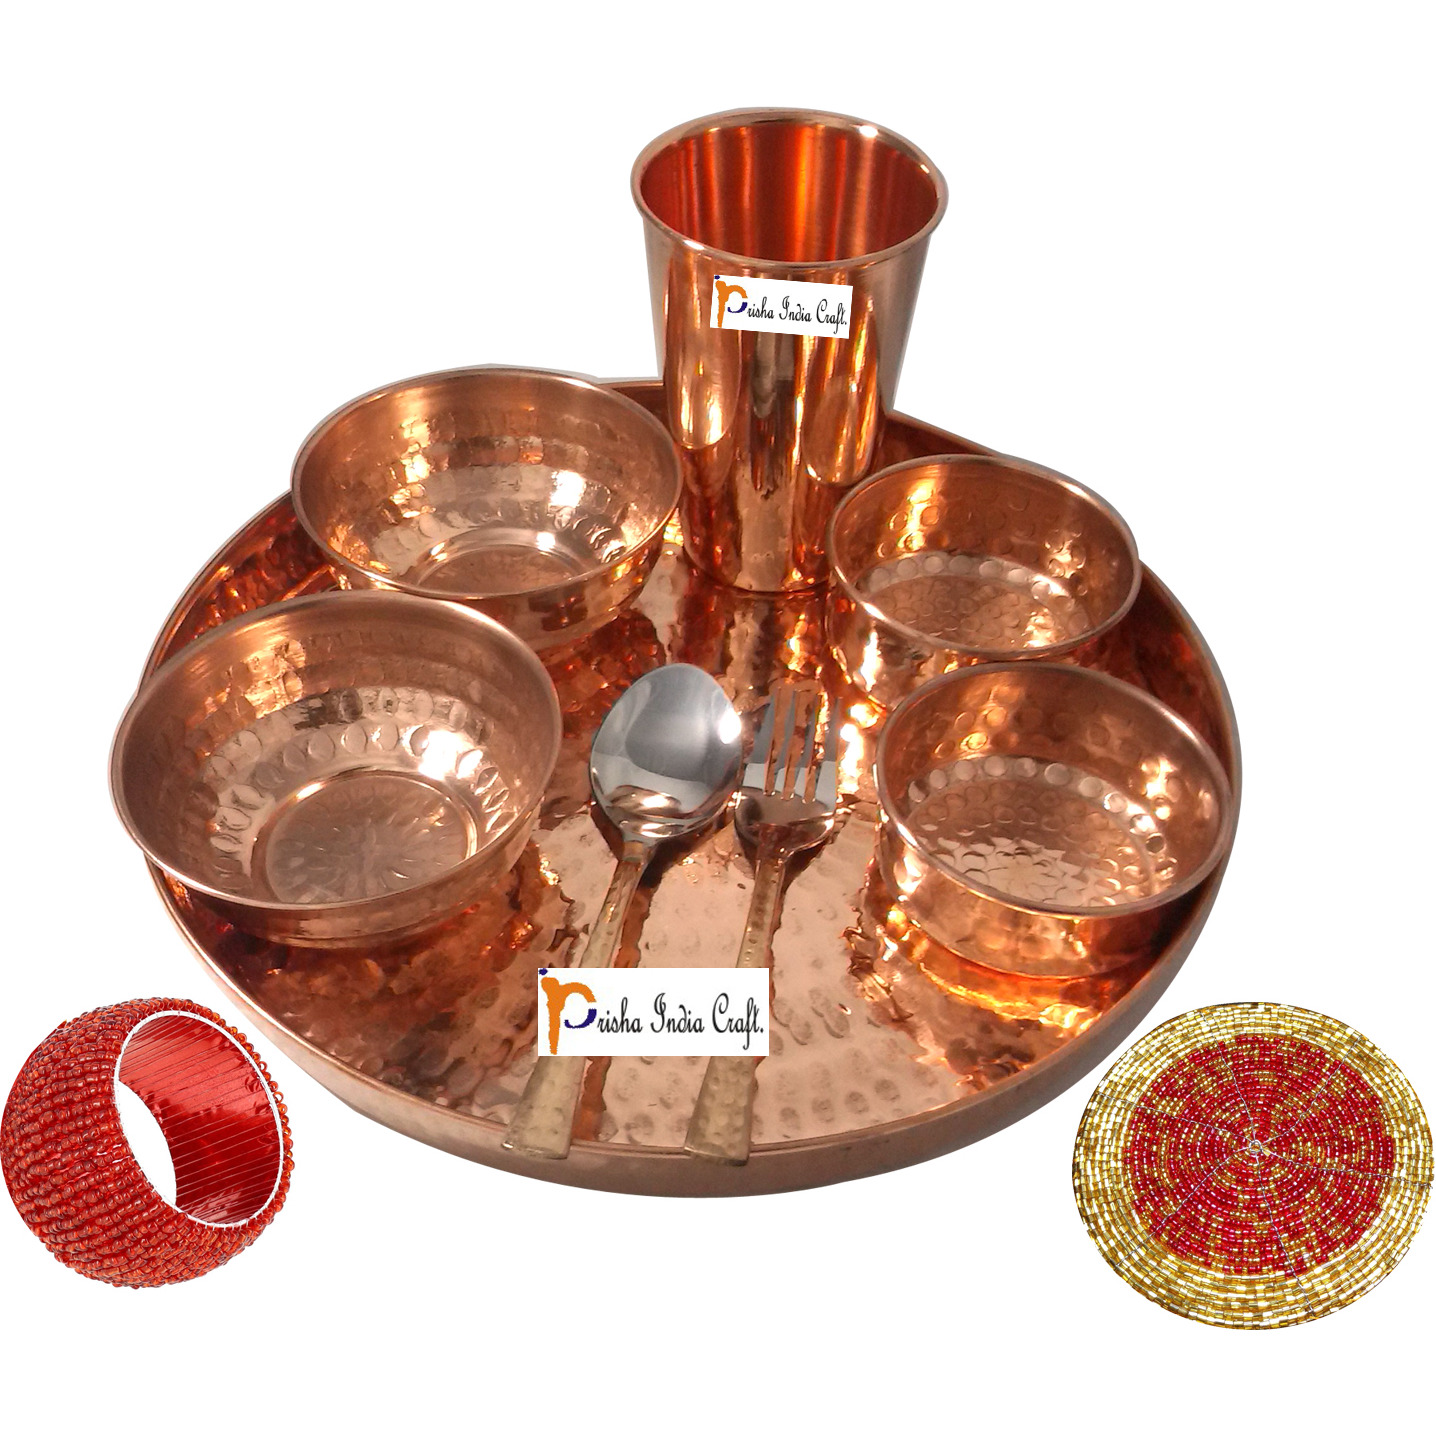 Set of 3 Prisha India Craft B. Indian Dinnerware Pure Copper Dinner Set Dia 12  Traditional Thali Set Dinner Set of Plate, Bowl, Spoons, Glass with Napkin ring and Coaster - Christmas Gift